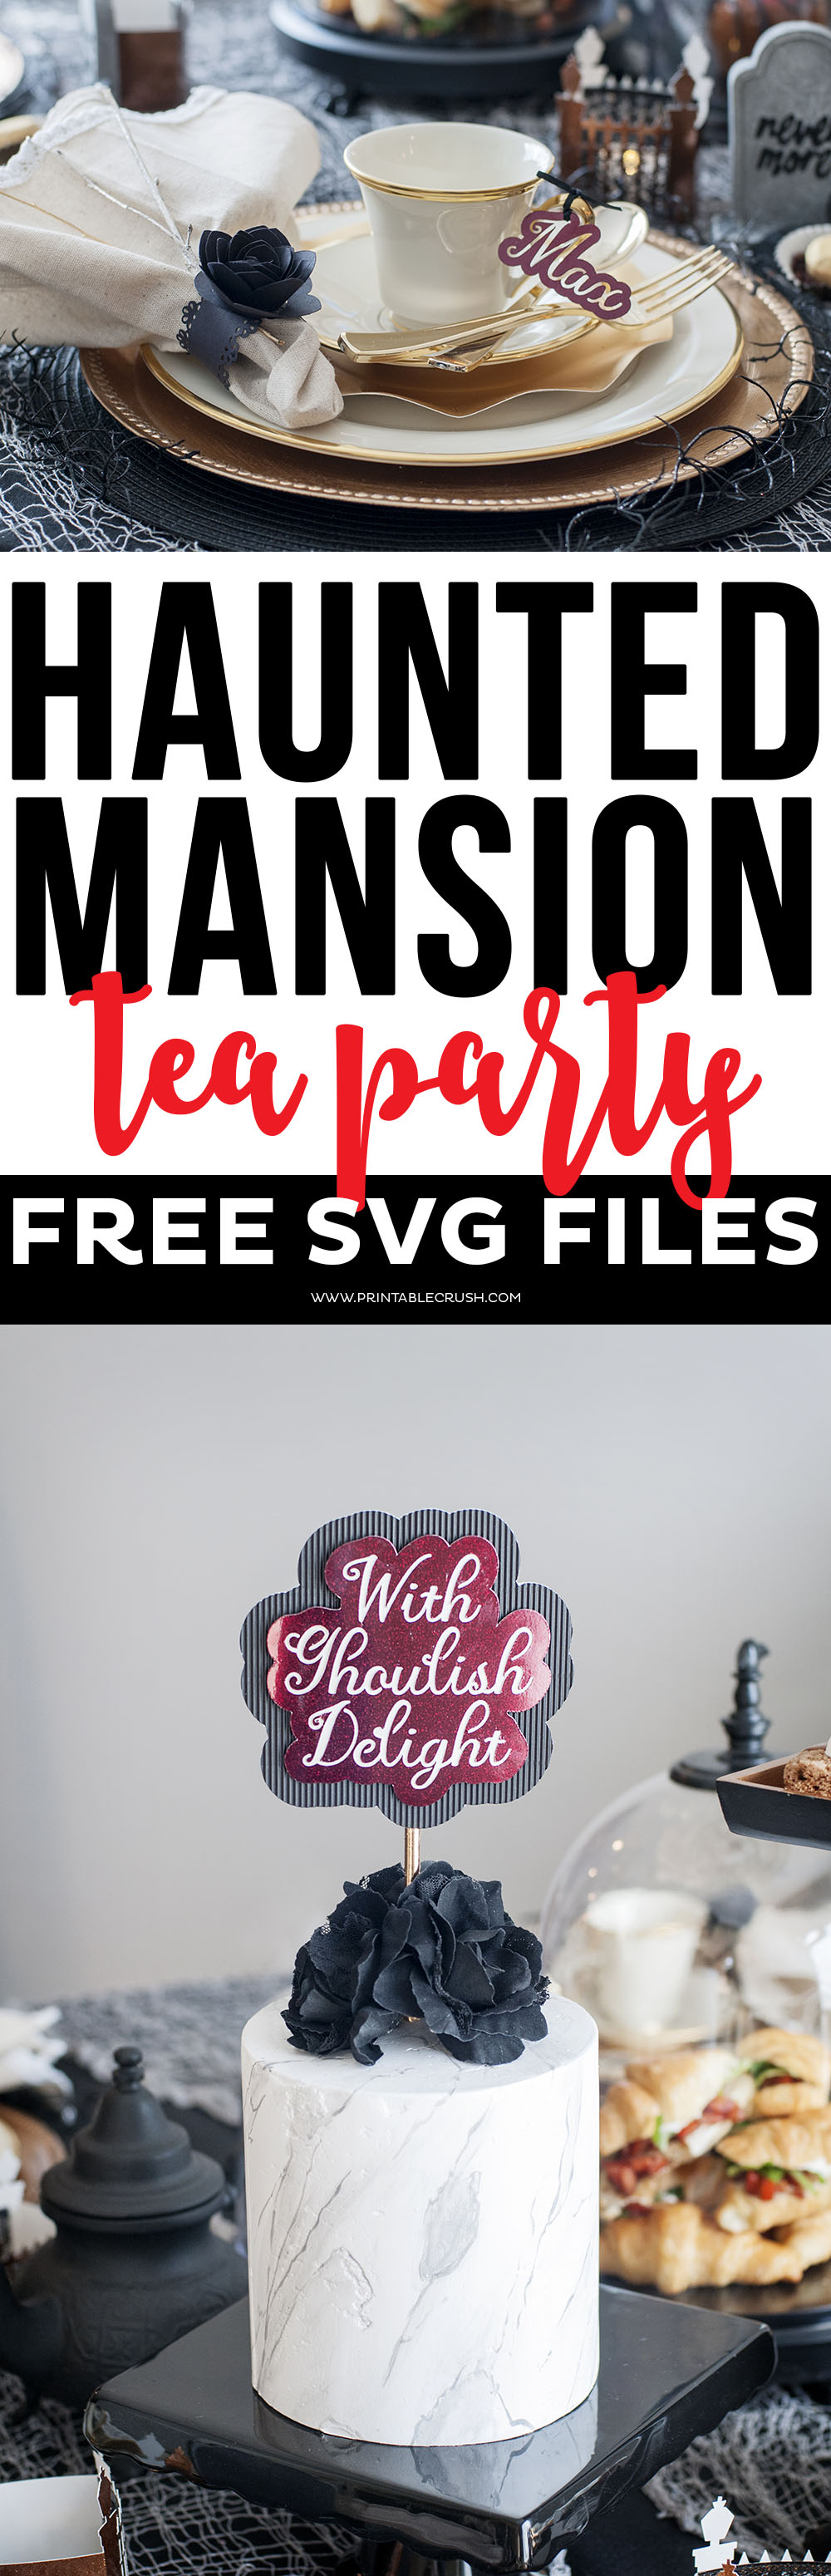 Download these FREE Haunted Mansion Tea Party SVG Files to use for your next party idea, or for your Halloween Decor! Includes 4 spooky Halloween designs! via @printablecrush